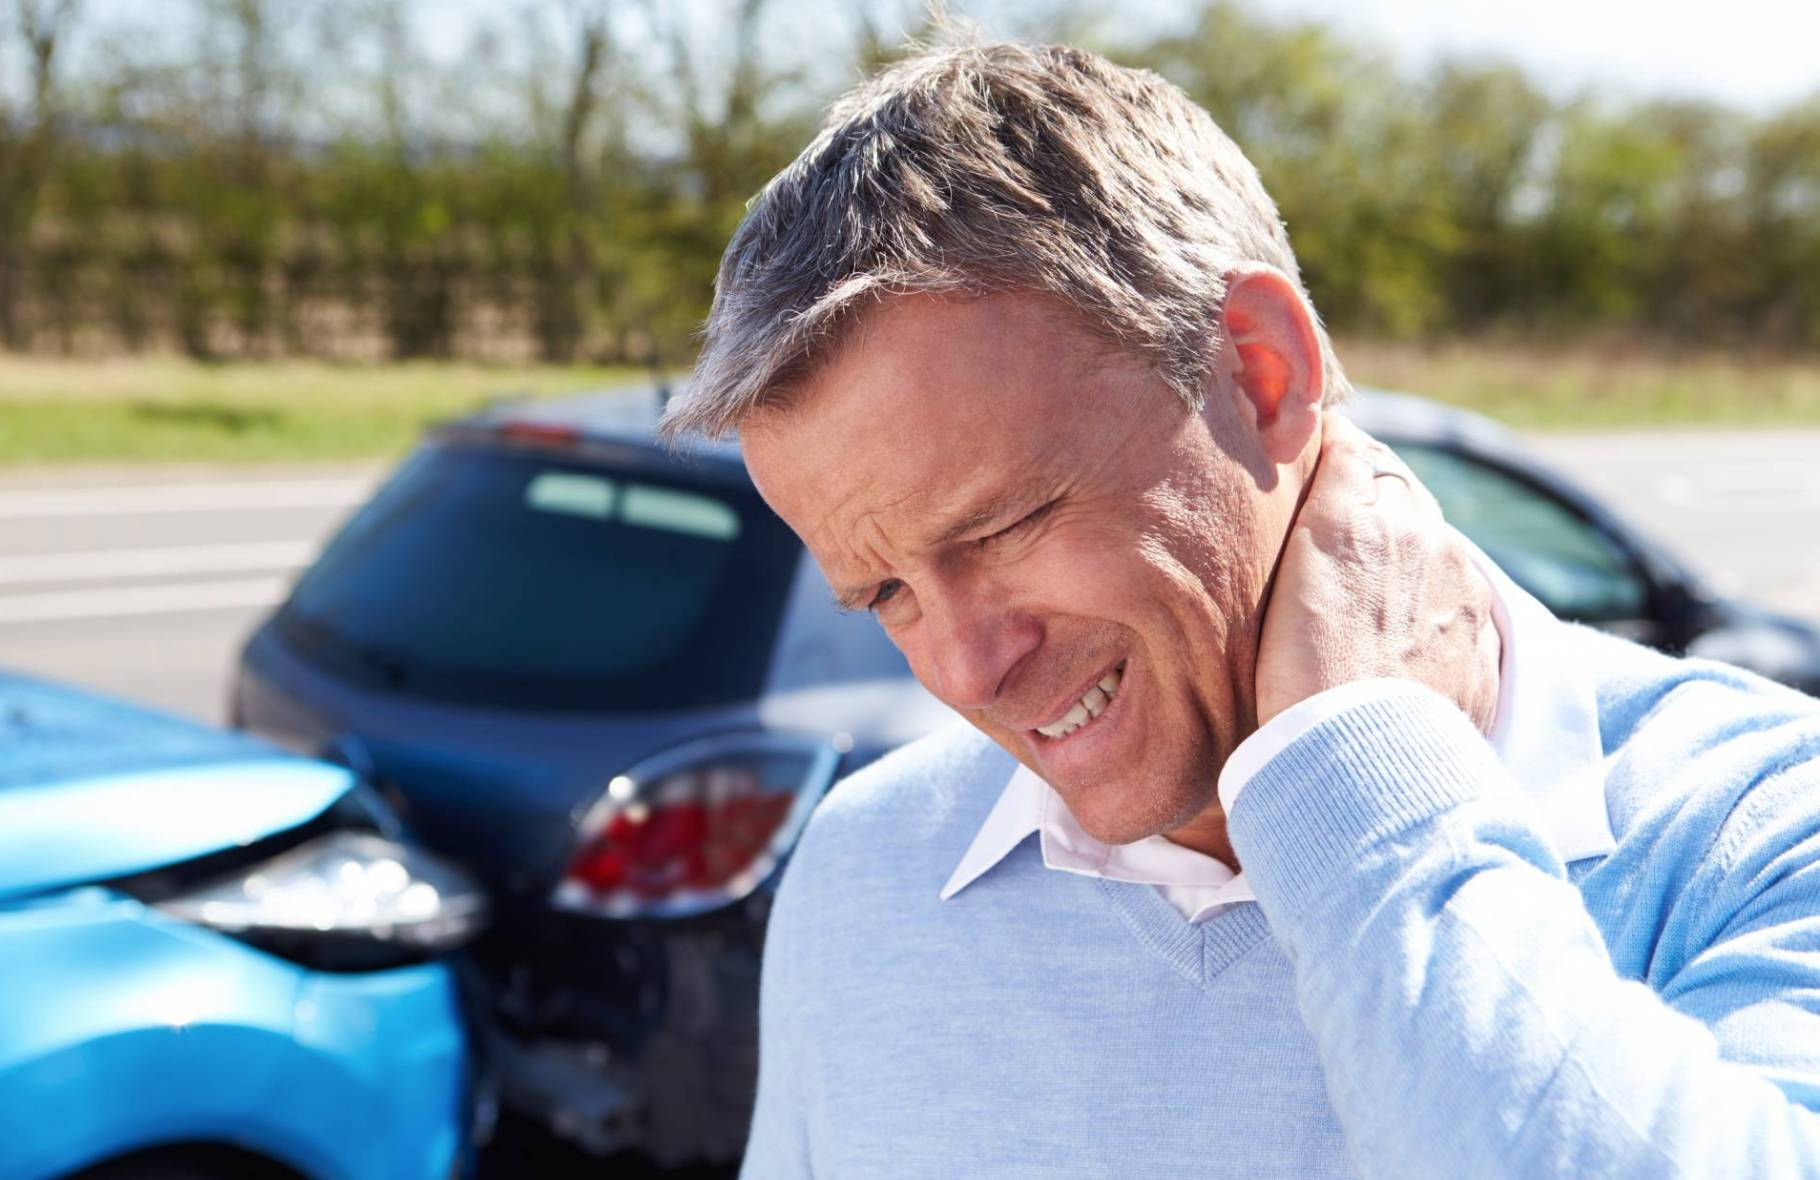 Personal Injury Lawyer in Douglasville